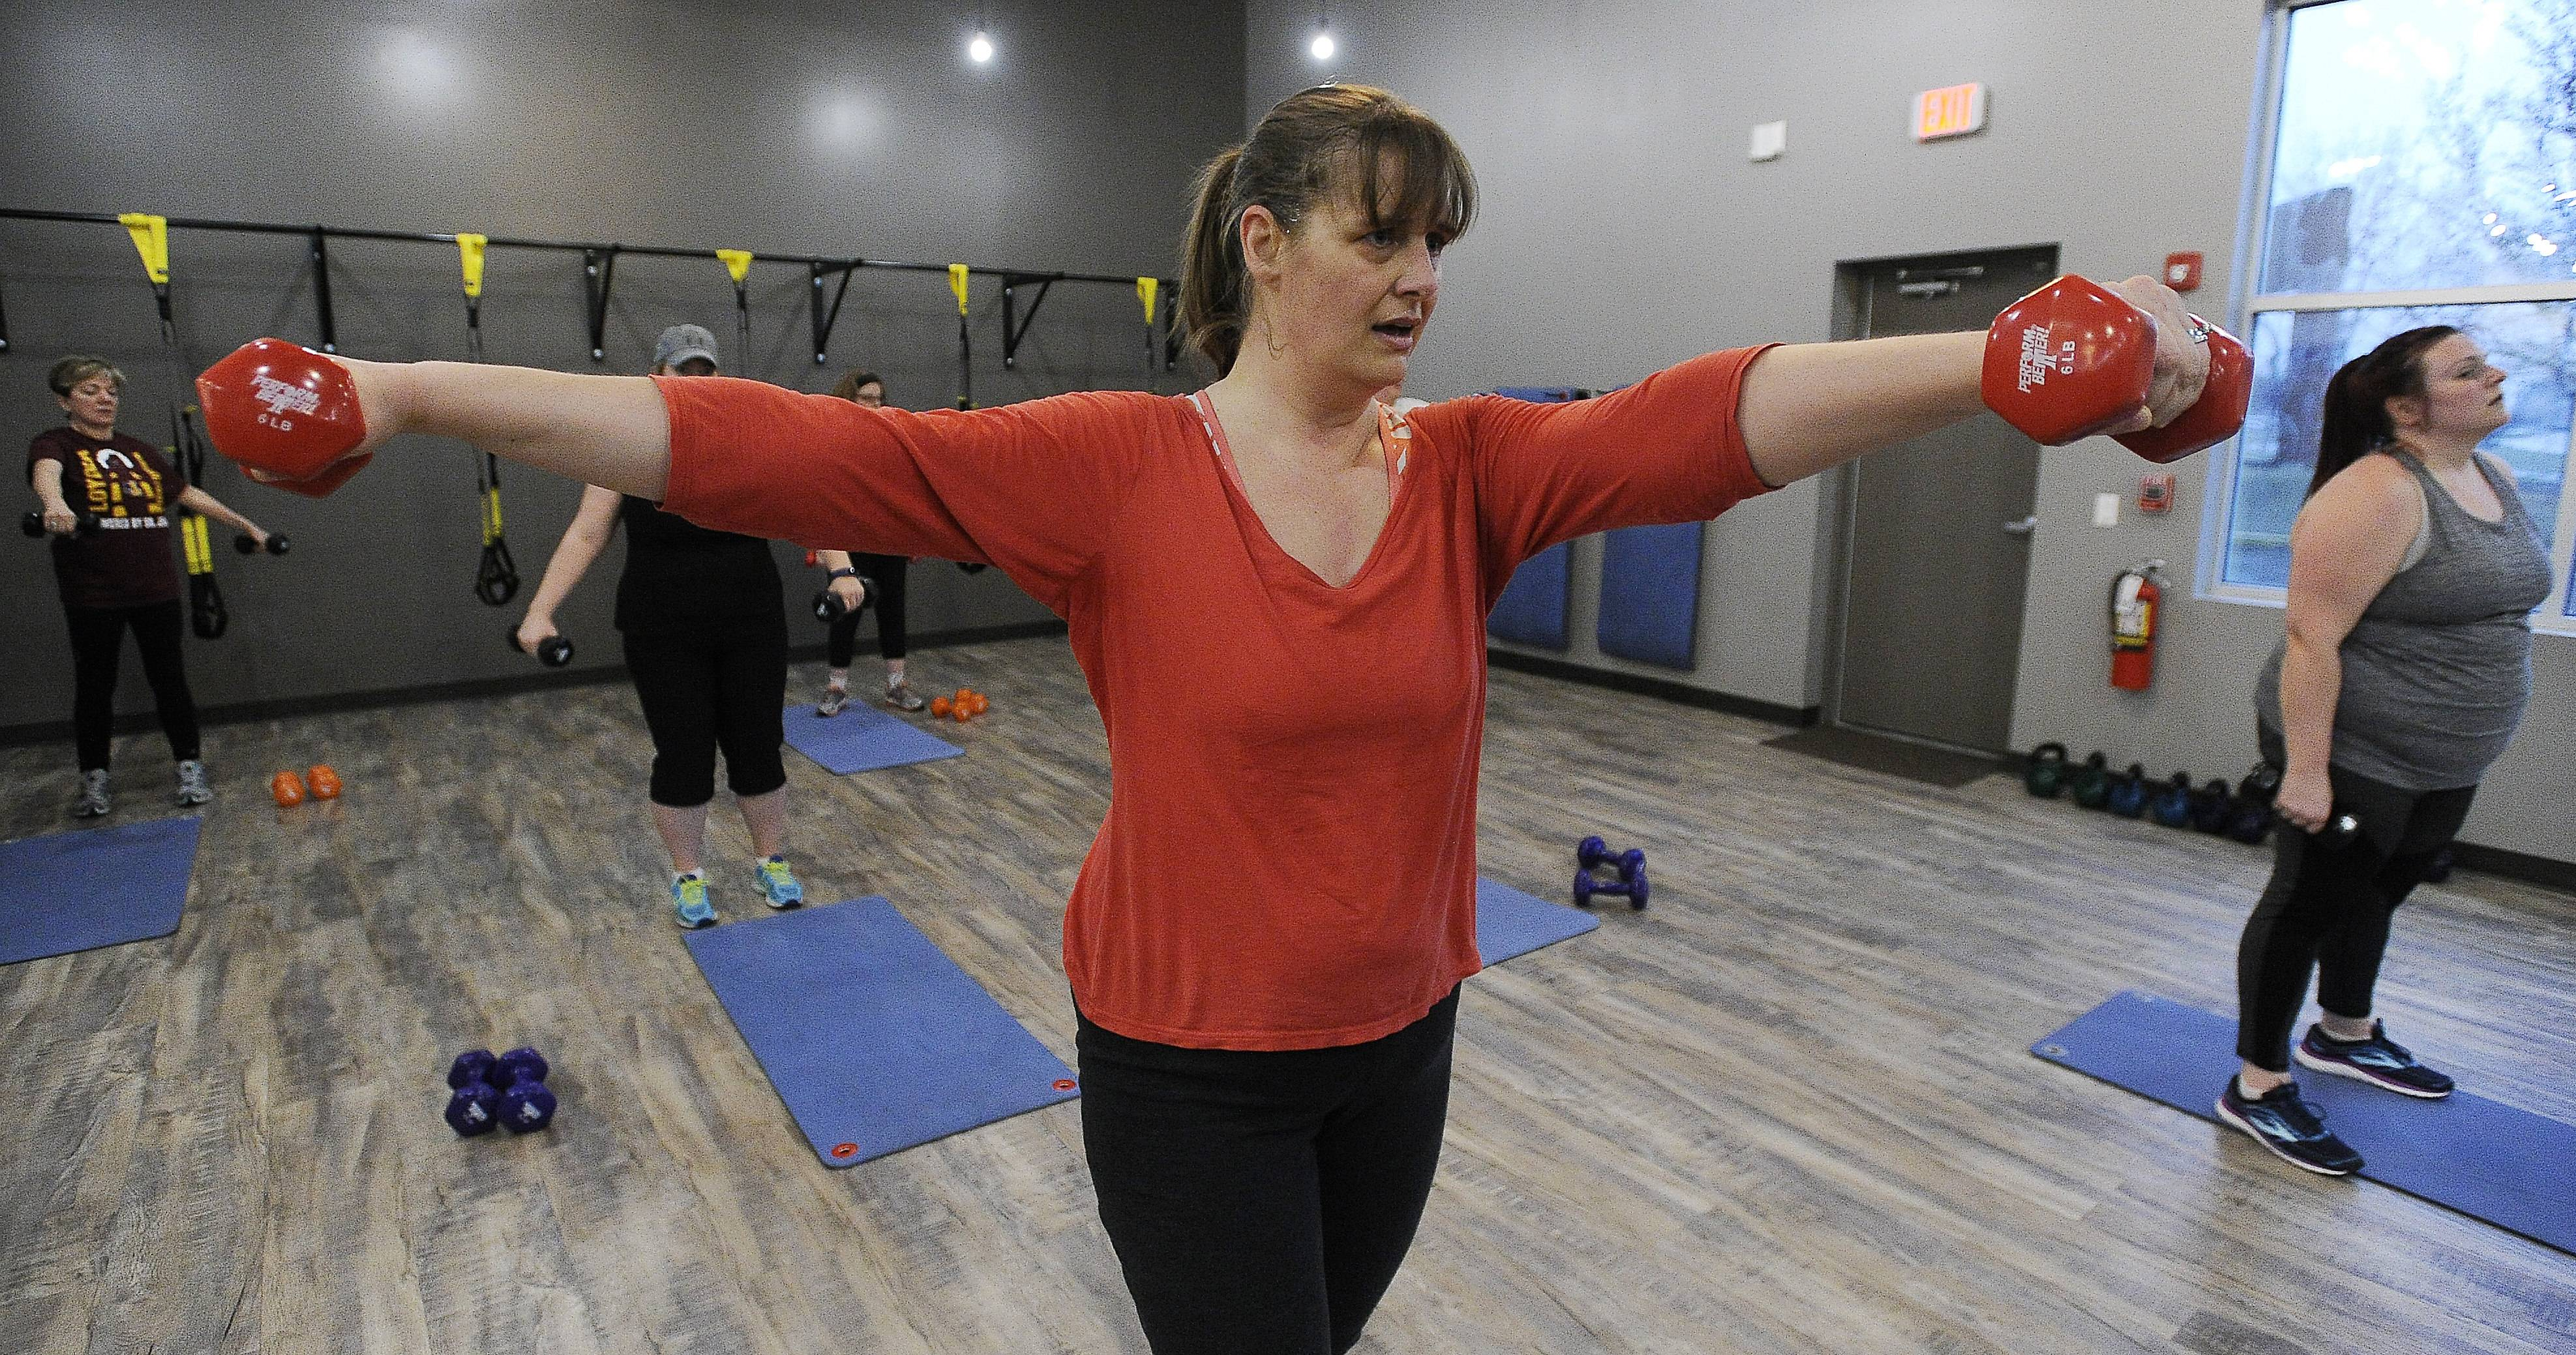 Kirsten Binder of Schaumburg works out at Push Fitness. Michelle Jeeninga, a certified personal trainer at Push Fitness, said getting your workout in bright and early is key to keeping weight off.